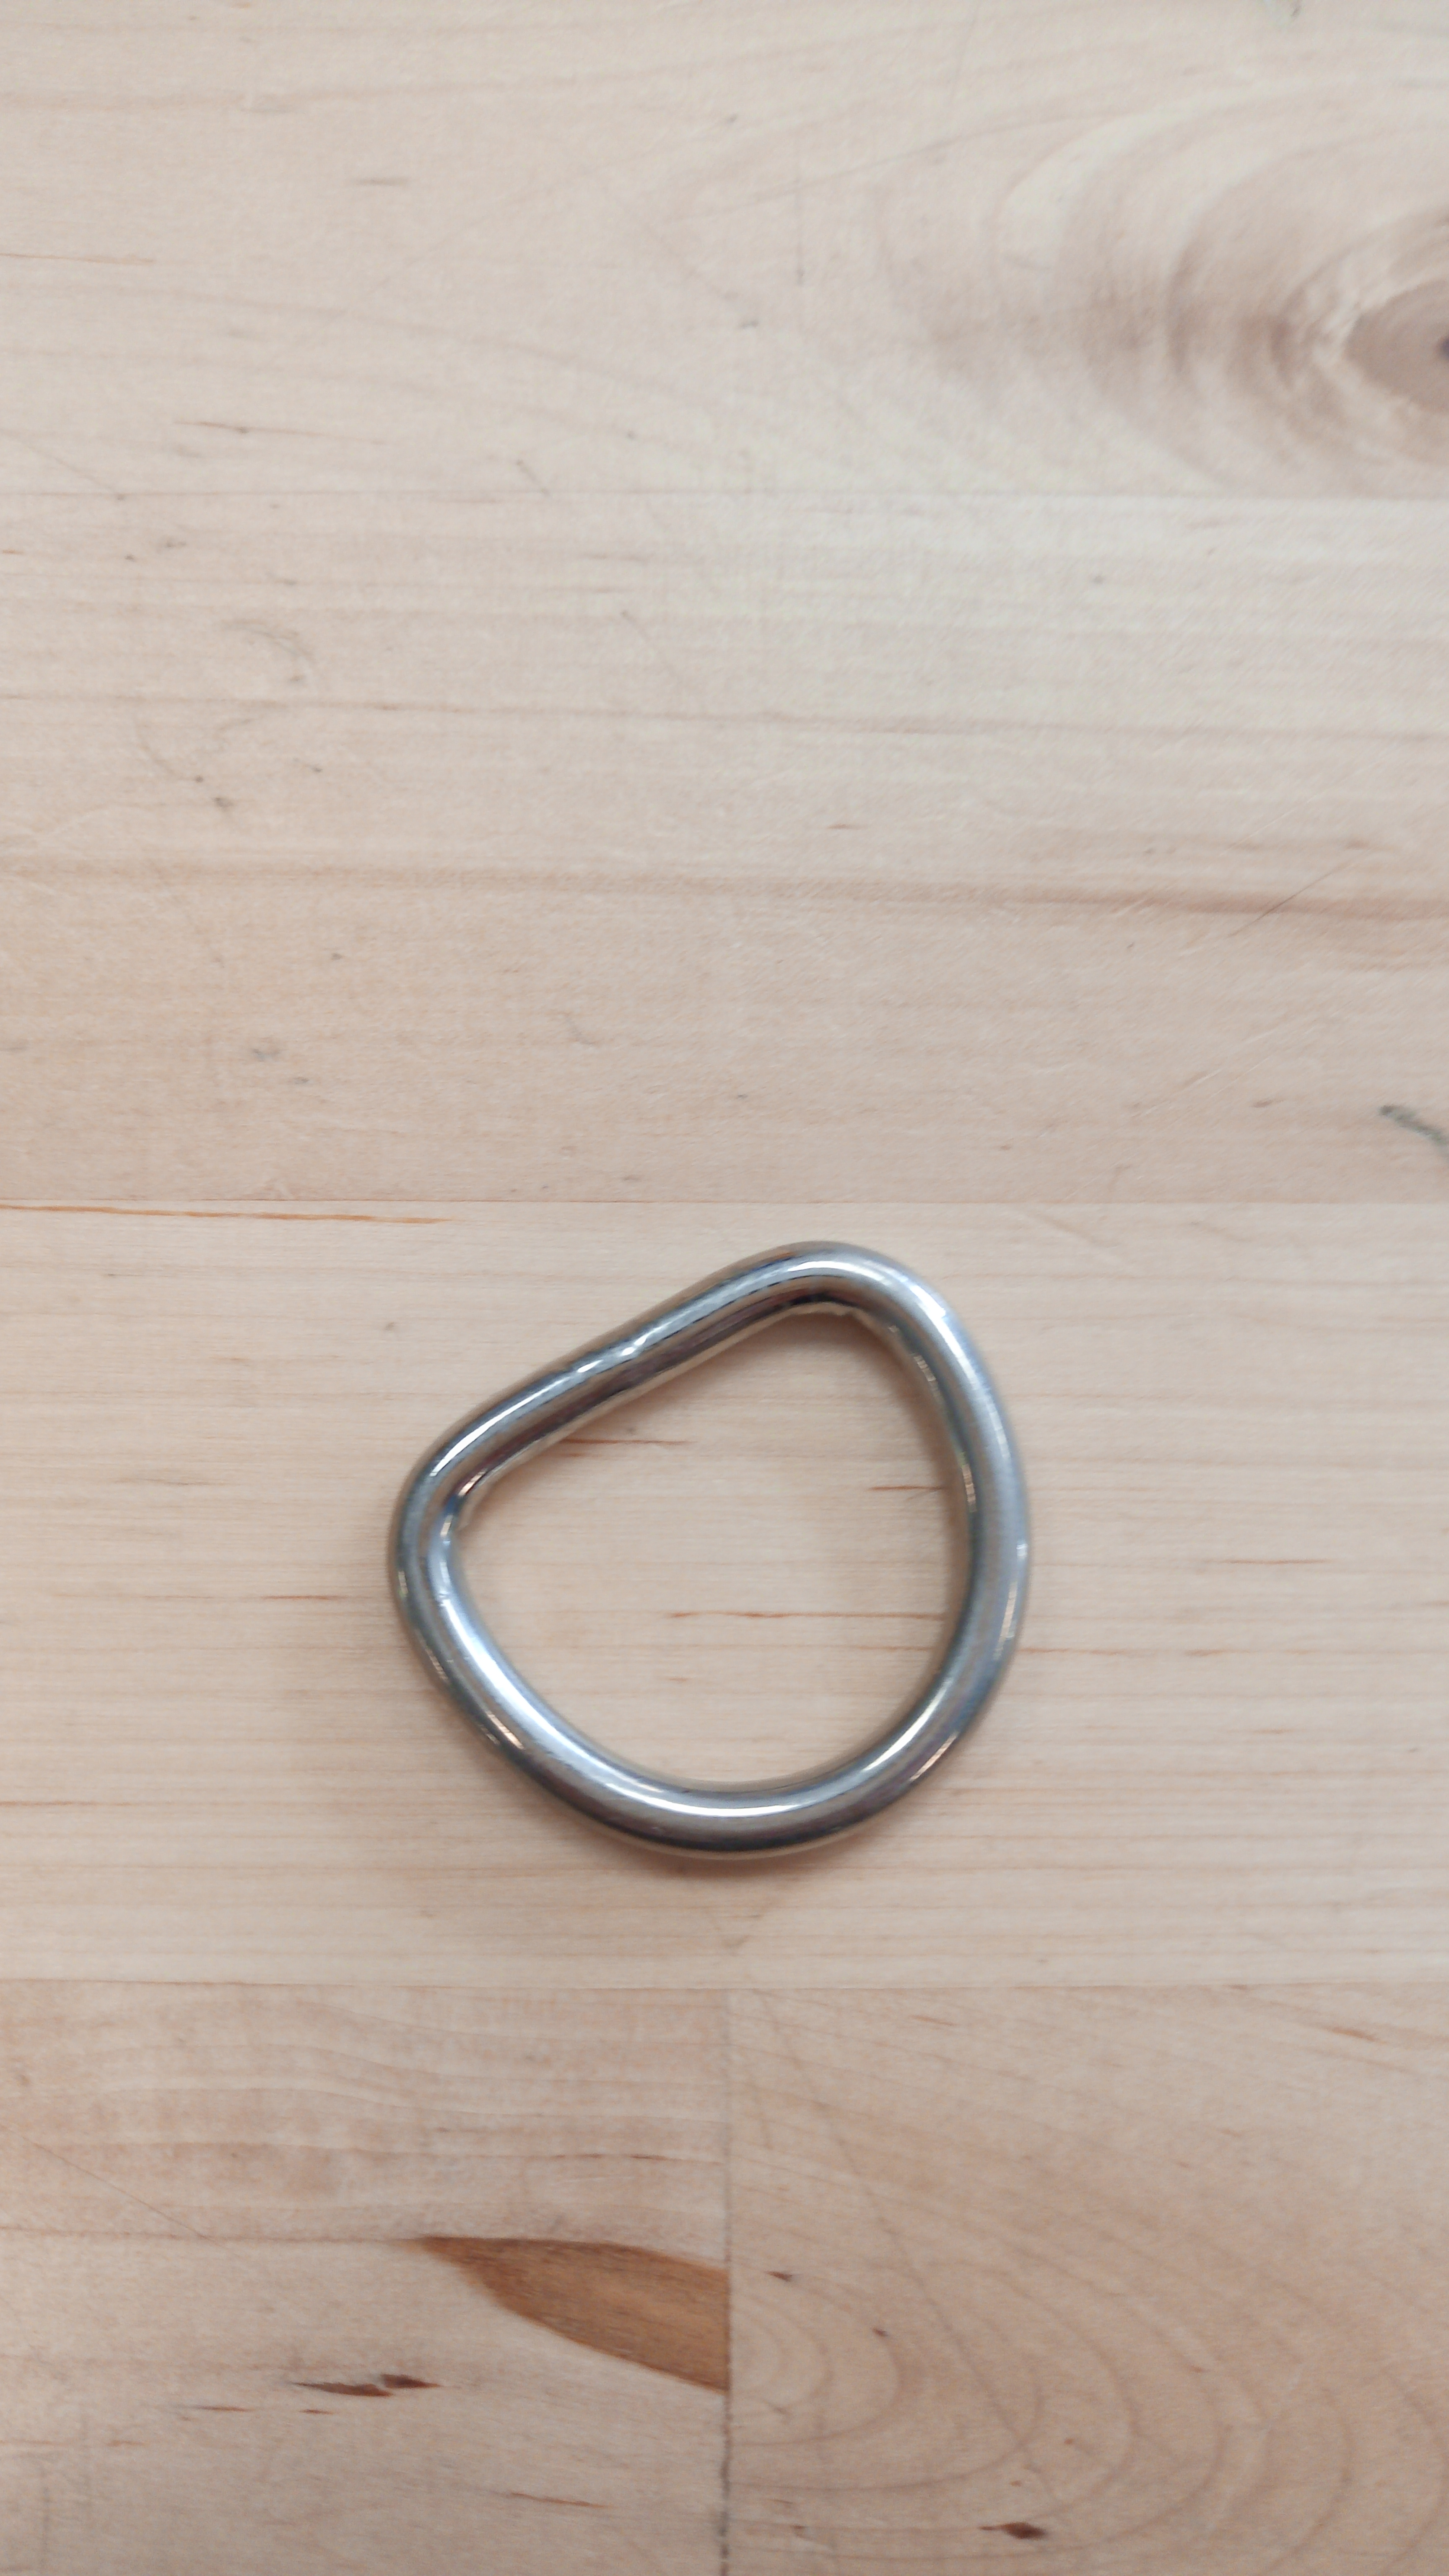 RVS D-ring removable W 30mm x H 25mm